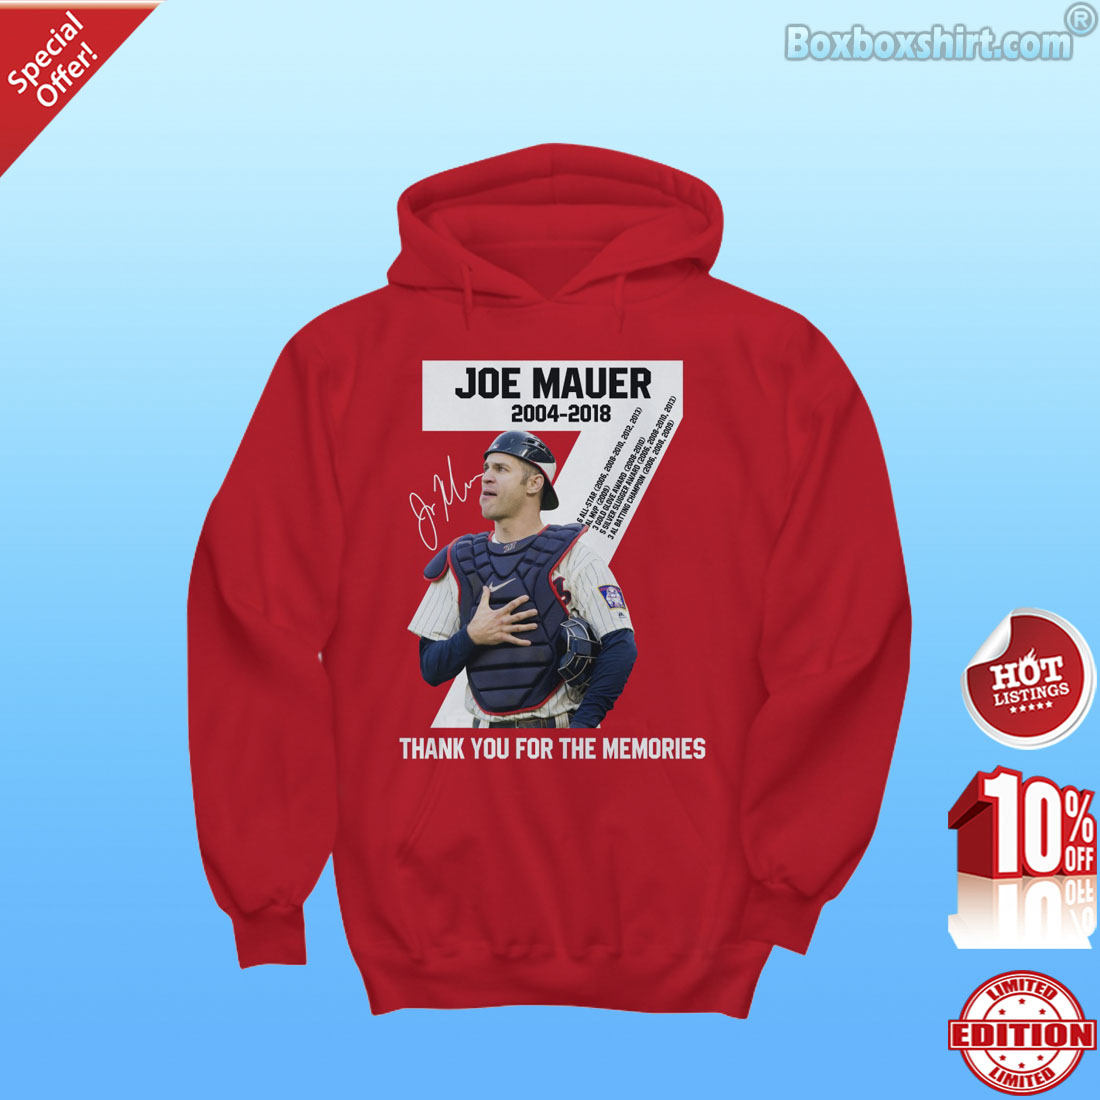 Minnesota Twins Joe Mauer retirement thank you for the memories shirt